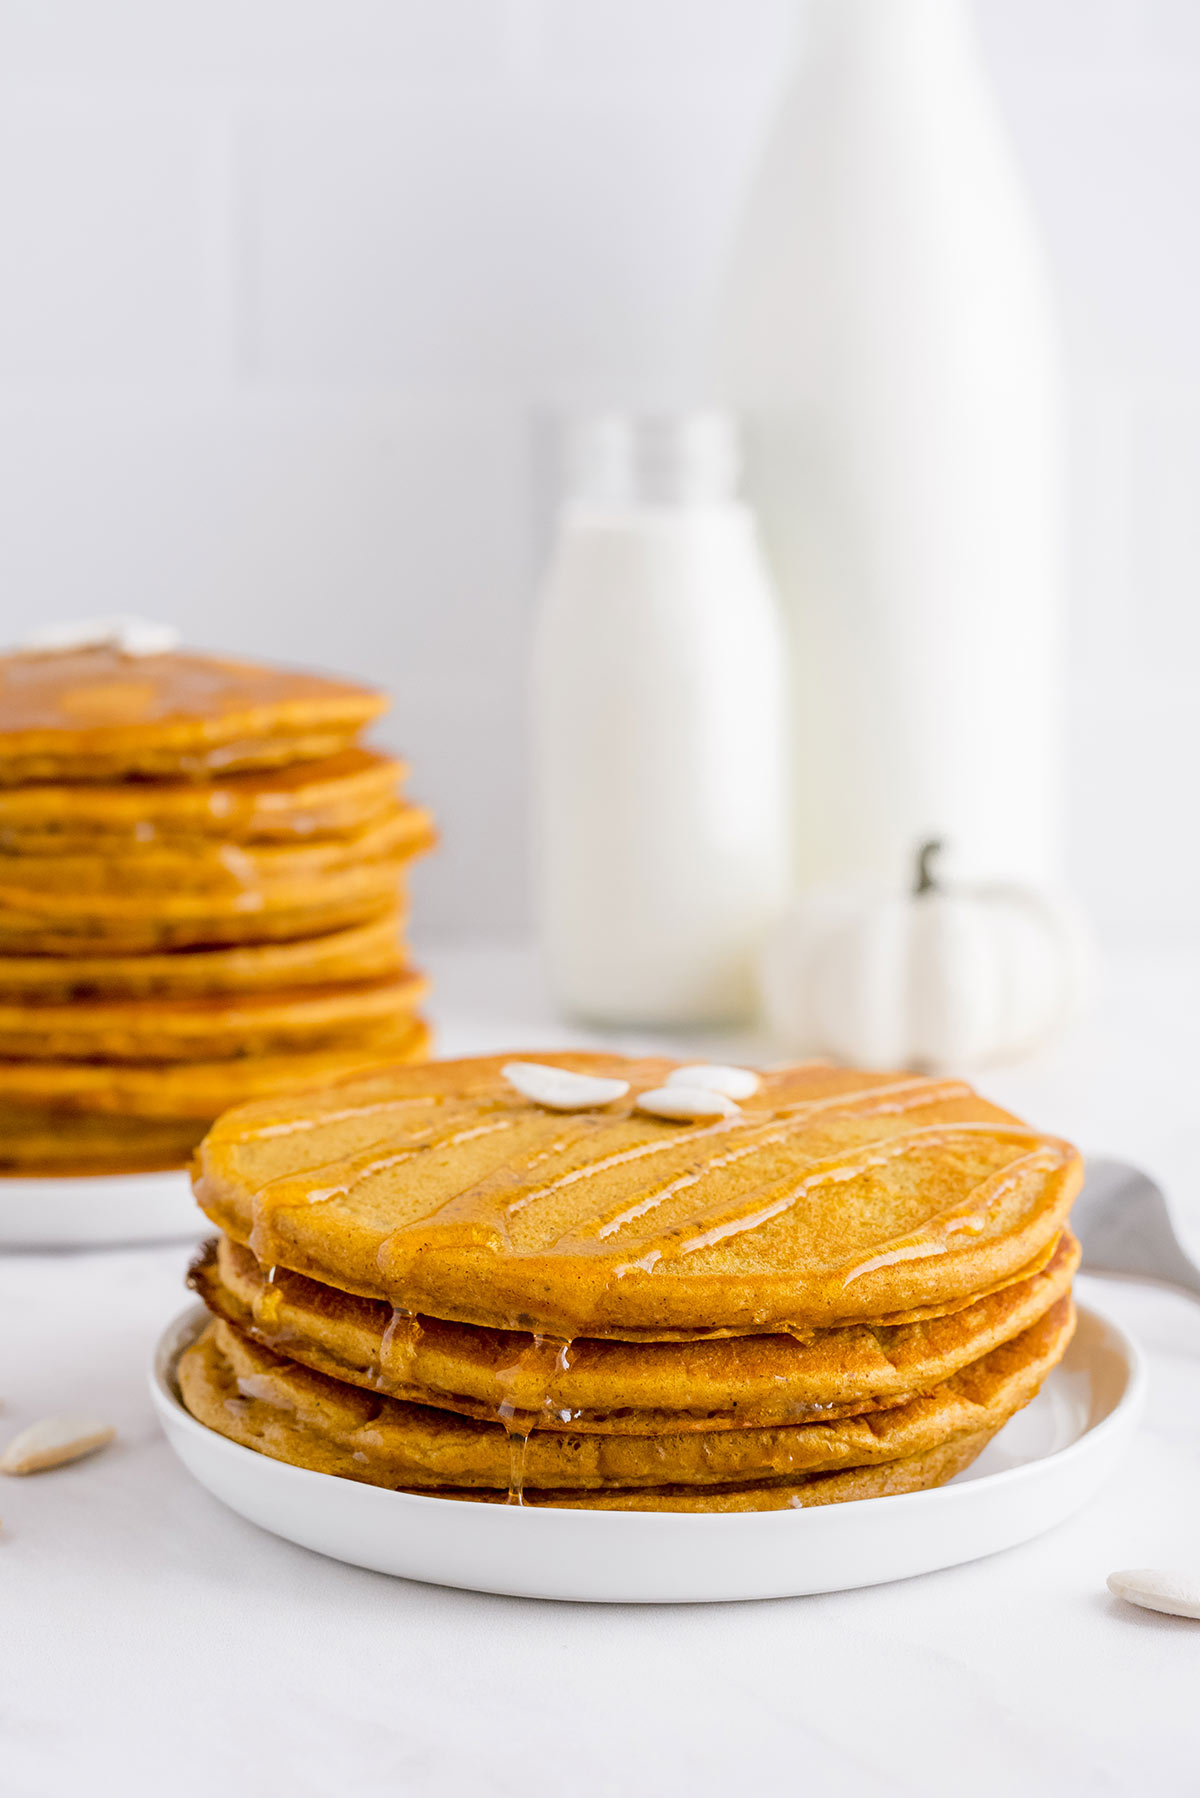 short stack of three fluffy pumpkin pancakes on a table with more pancakes in the background